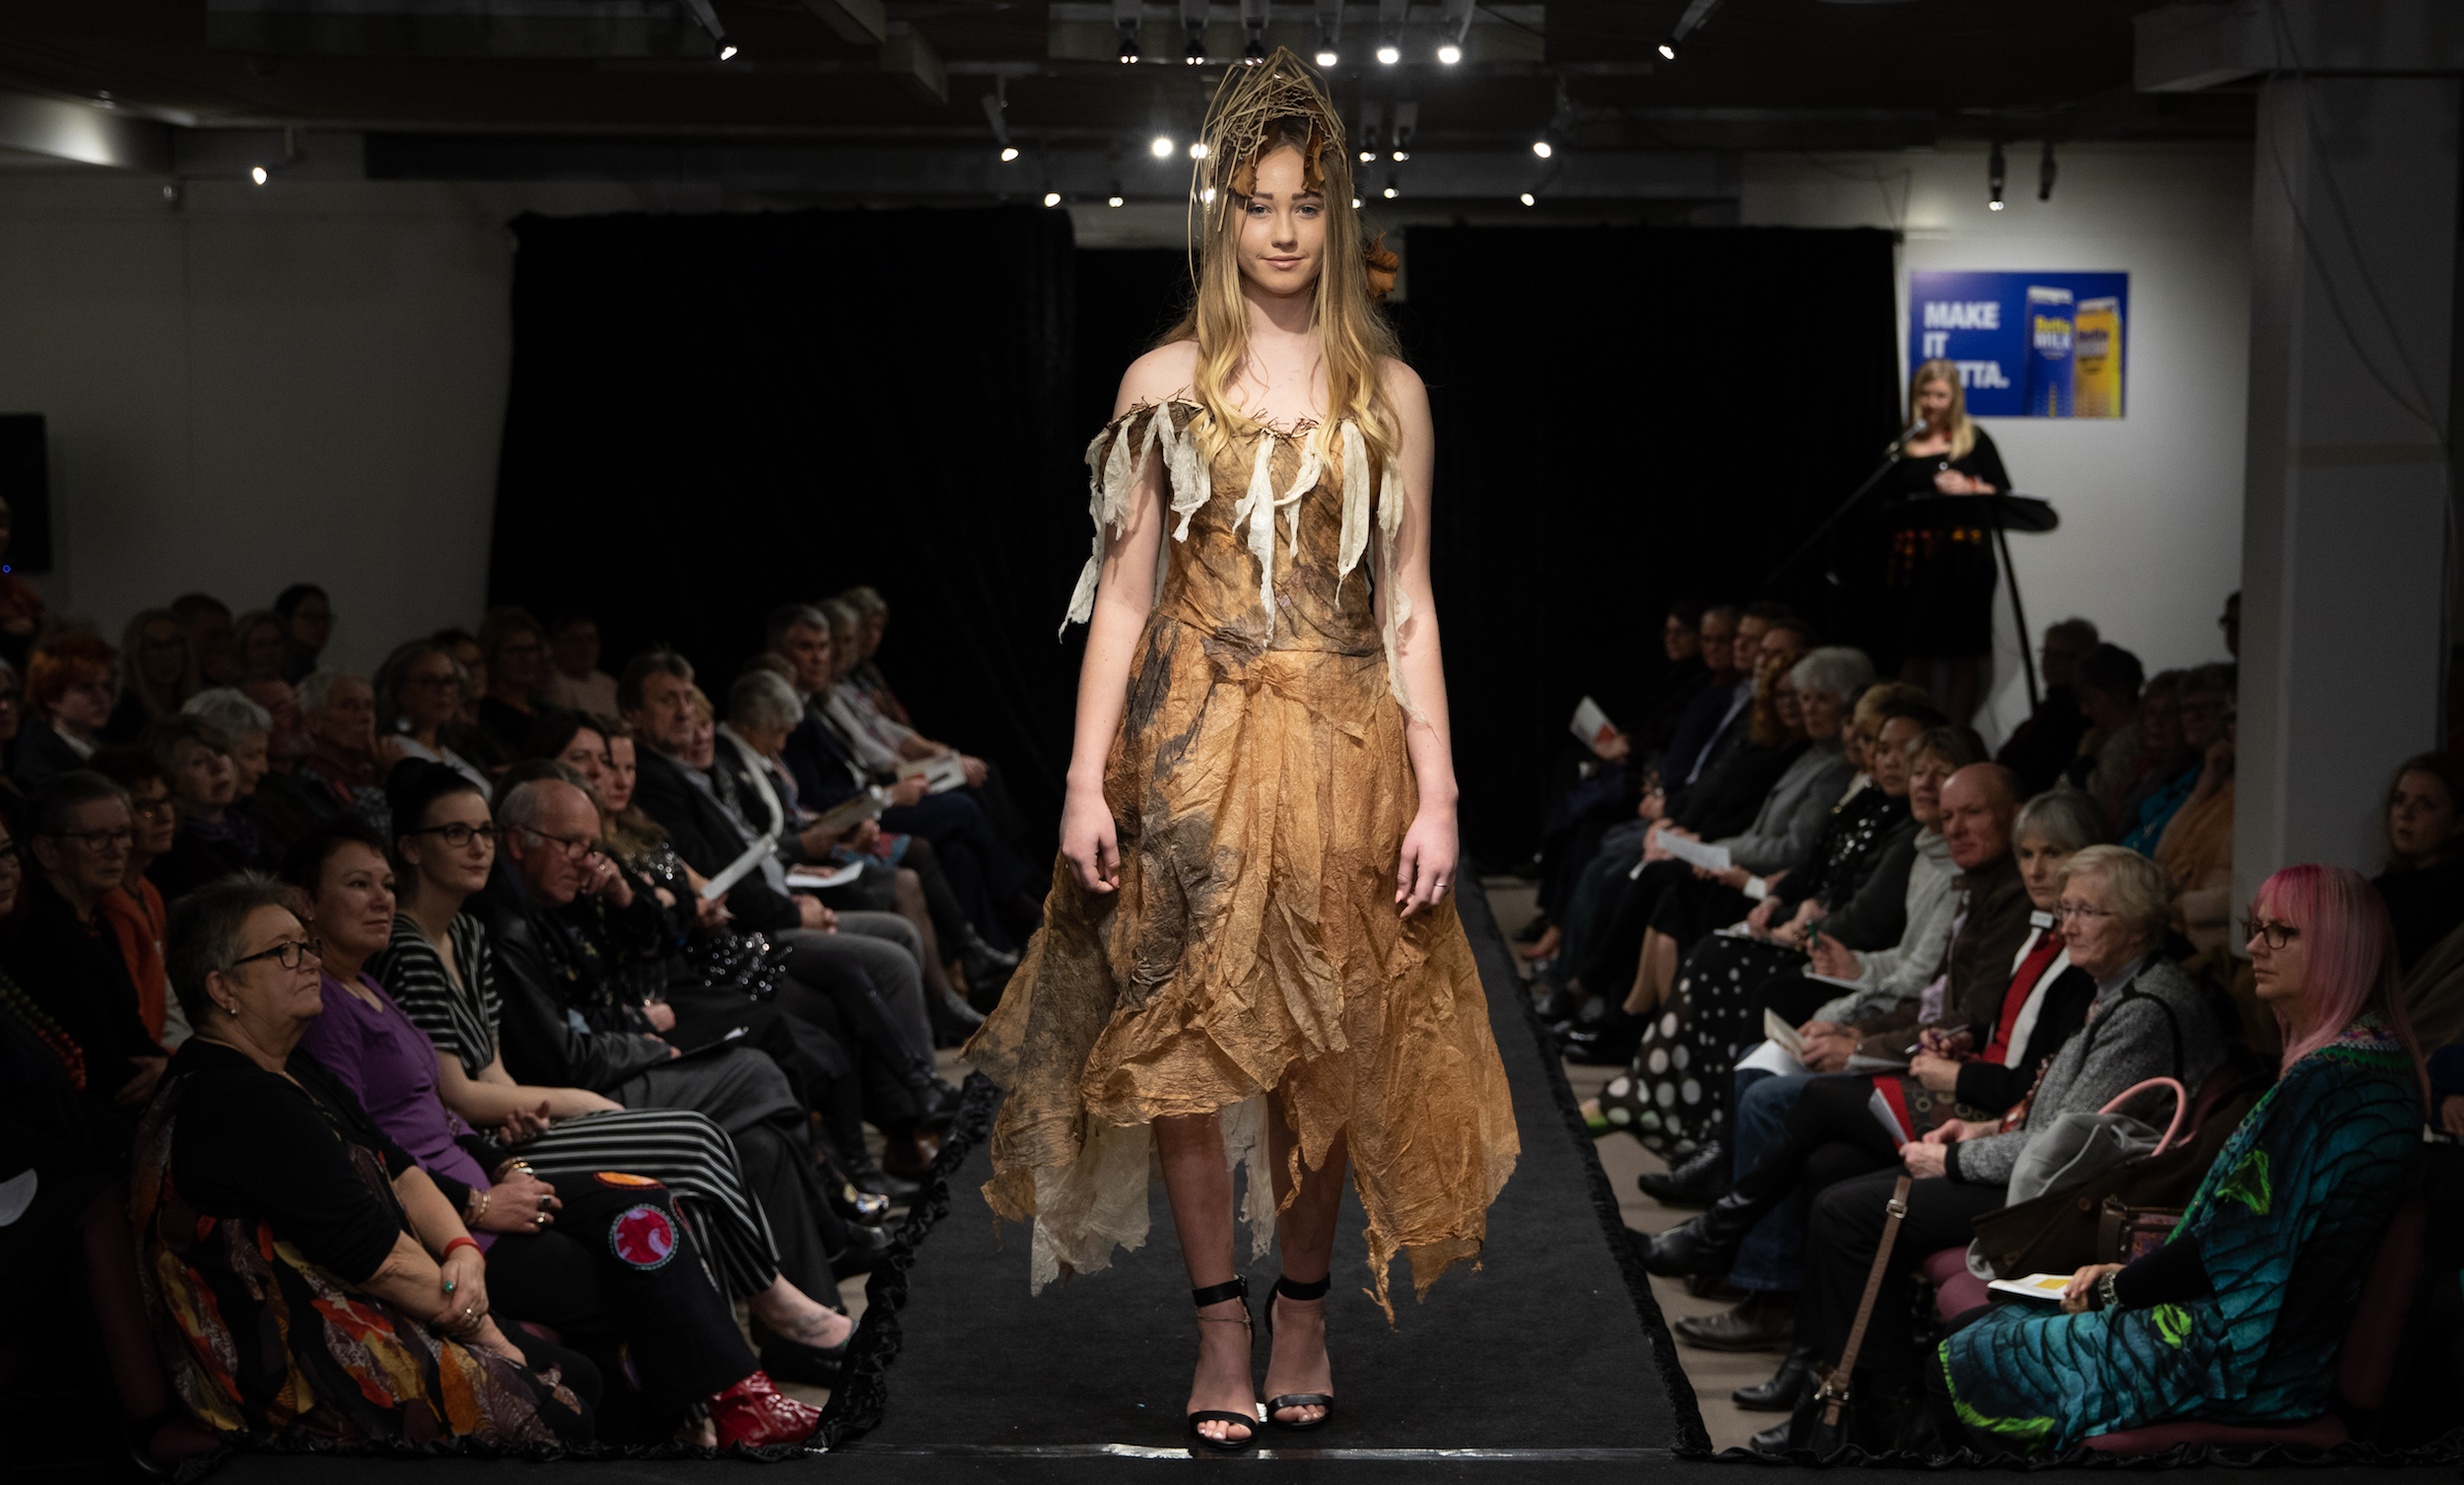 Flood  by Anne Leon and Heather Matthew on the runway for  Paper on Skin  2018. Image courtesy Grant Wells Photos.